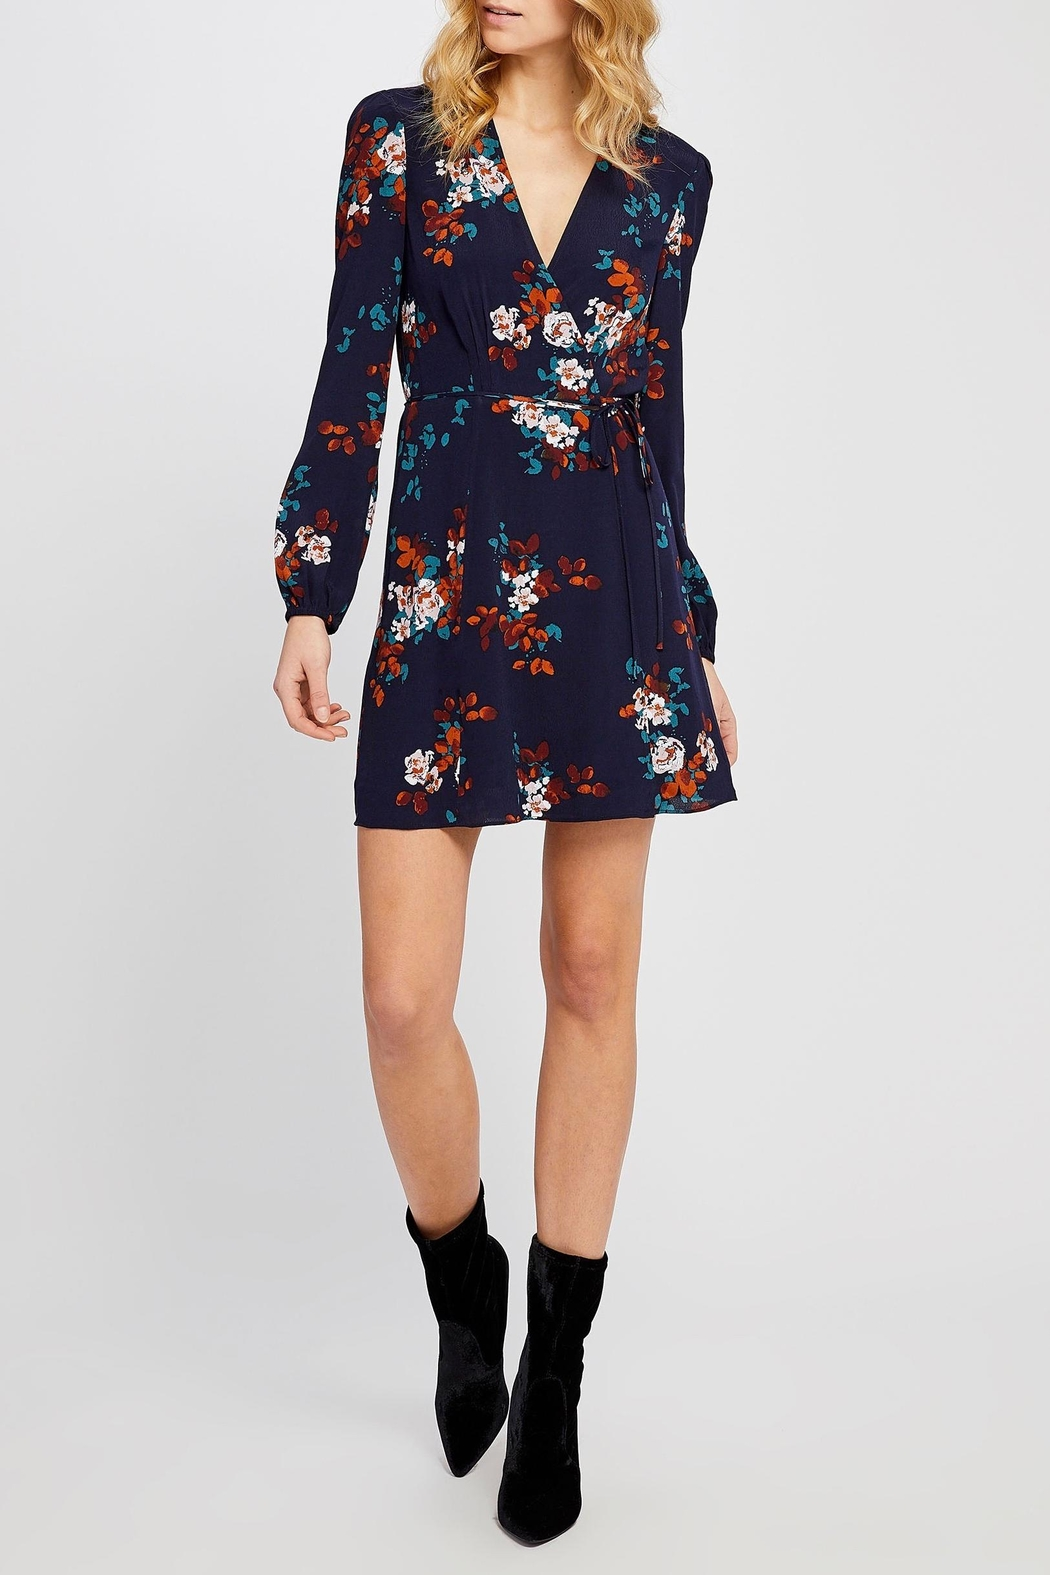 Gentle Fawn Floral Wrap Dress - Main Image